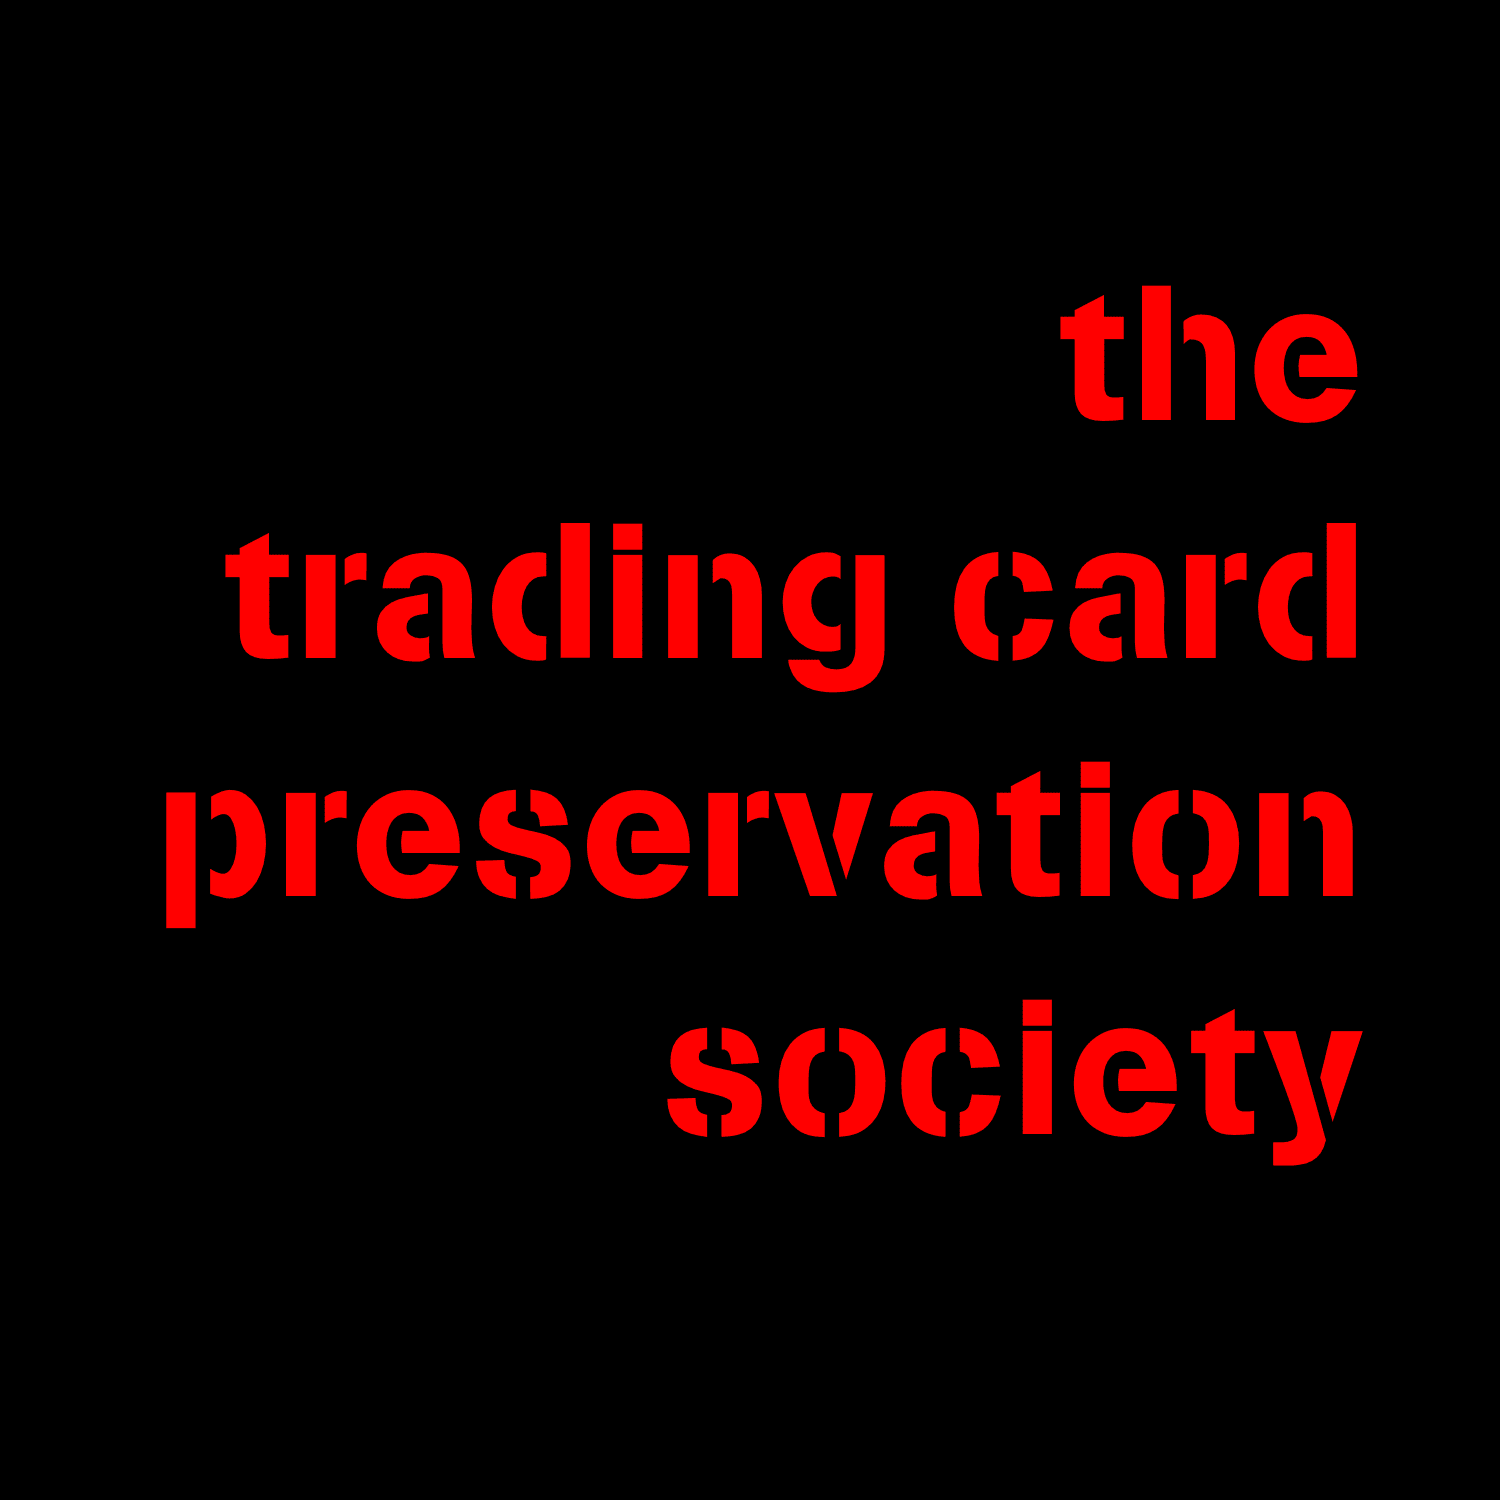 Download The Trading Card Preservation Society Podcast!